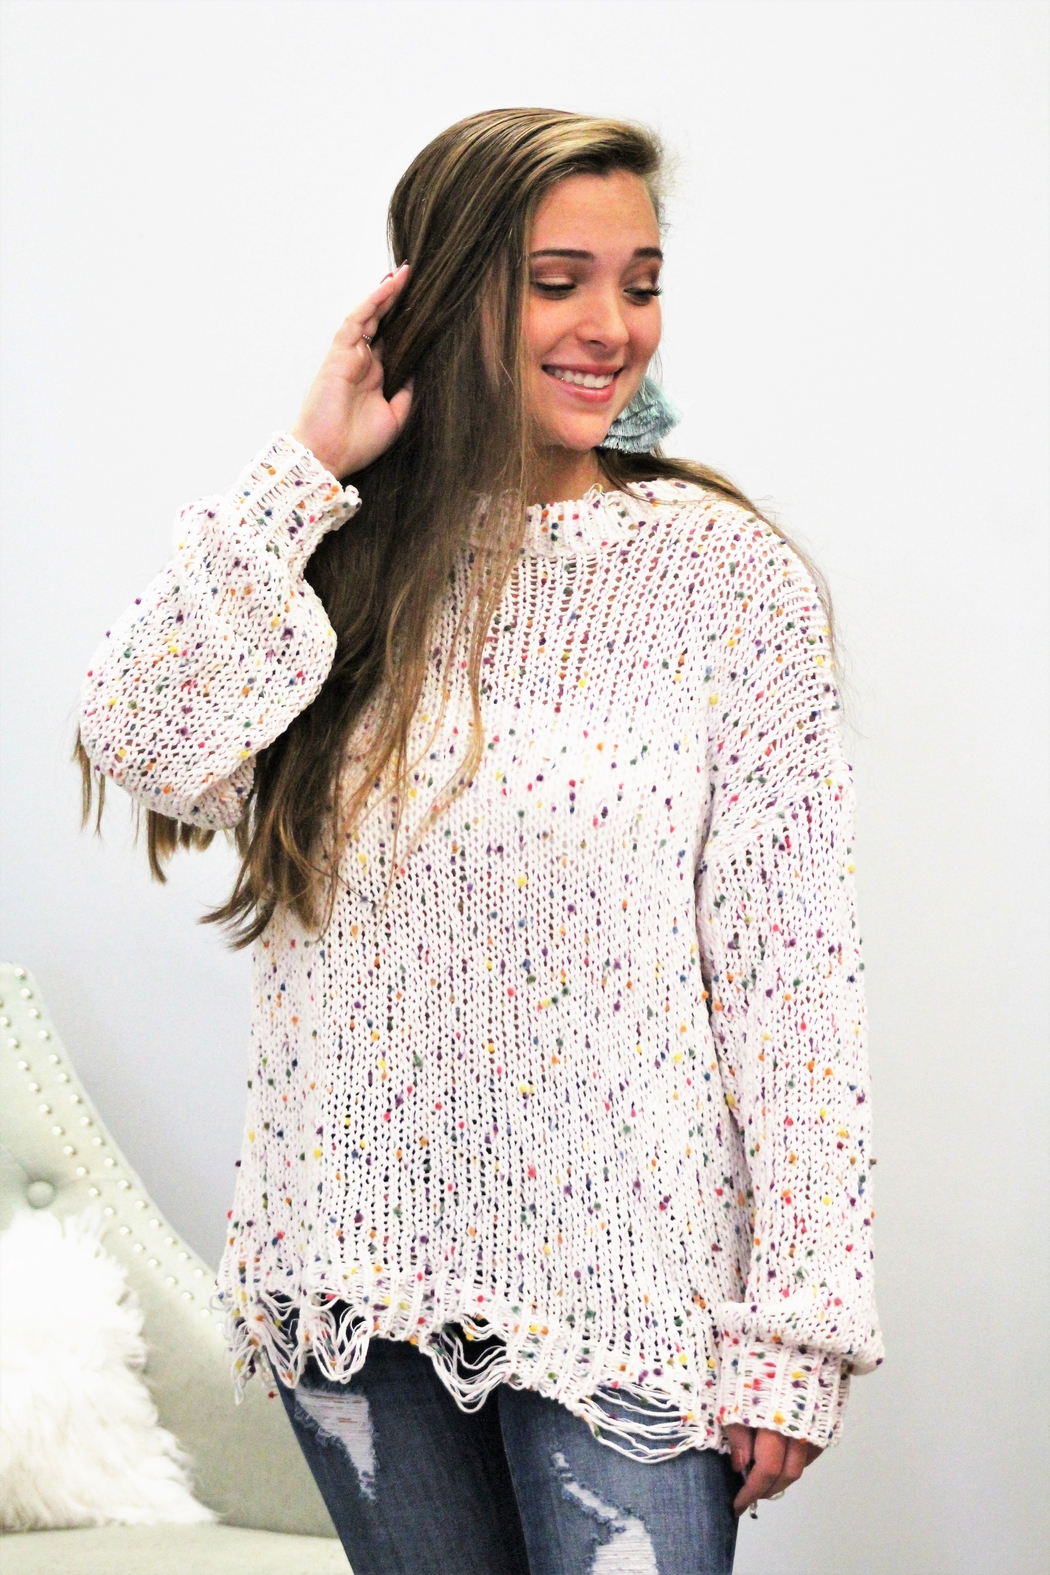 143 Story Splash of Color Confetti Sweater - Front Full Image